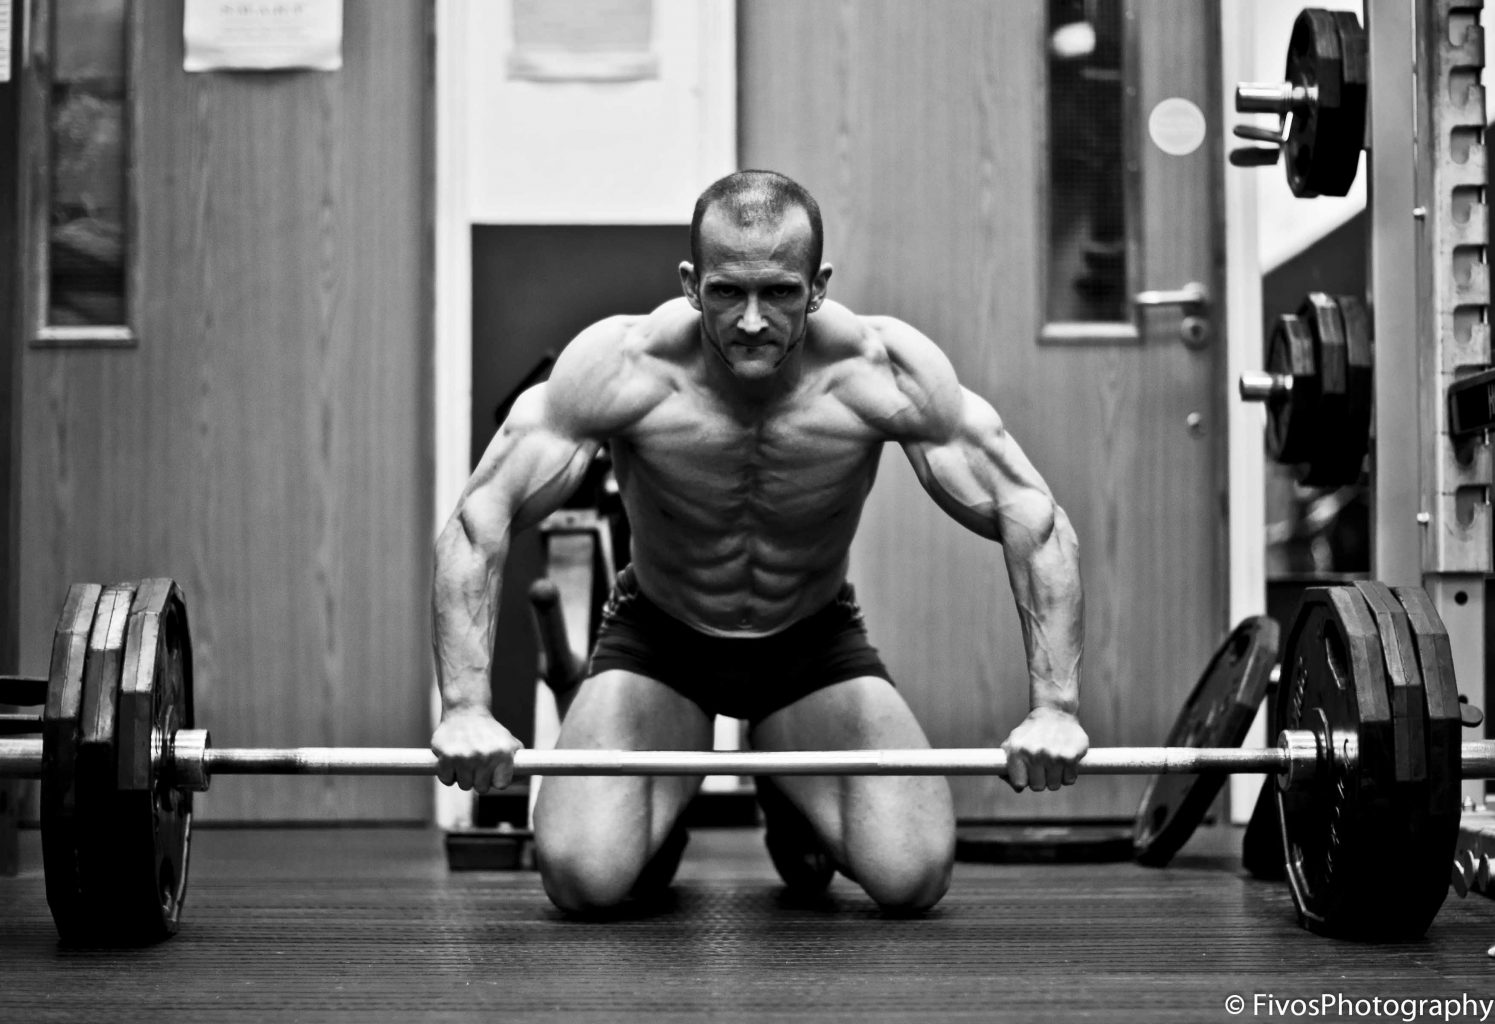 3 Things to Consider Before Getting Into Natural Bodybuilding